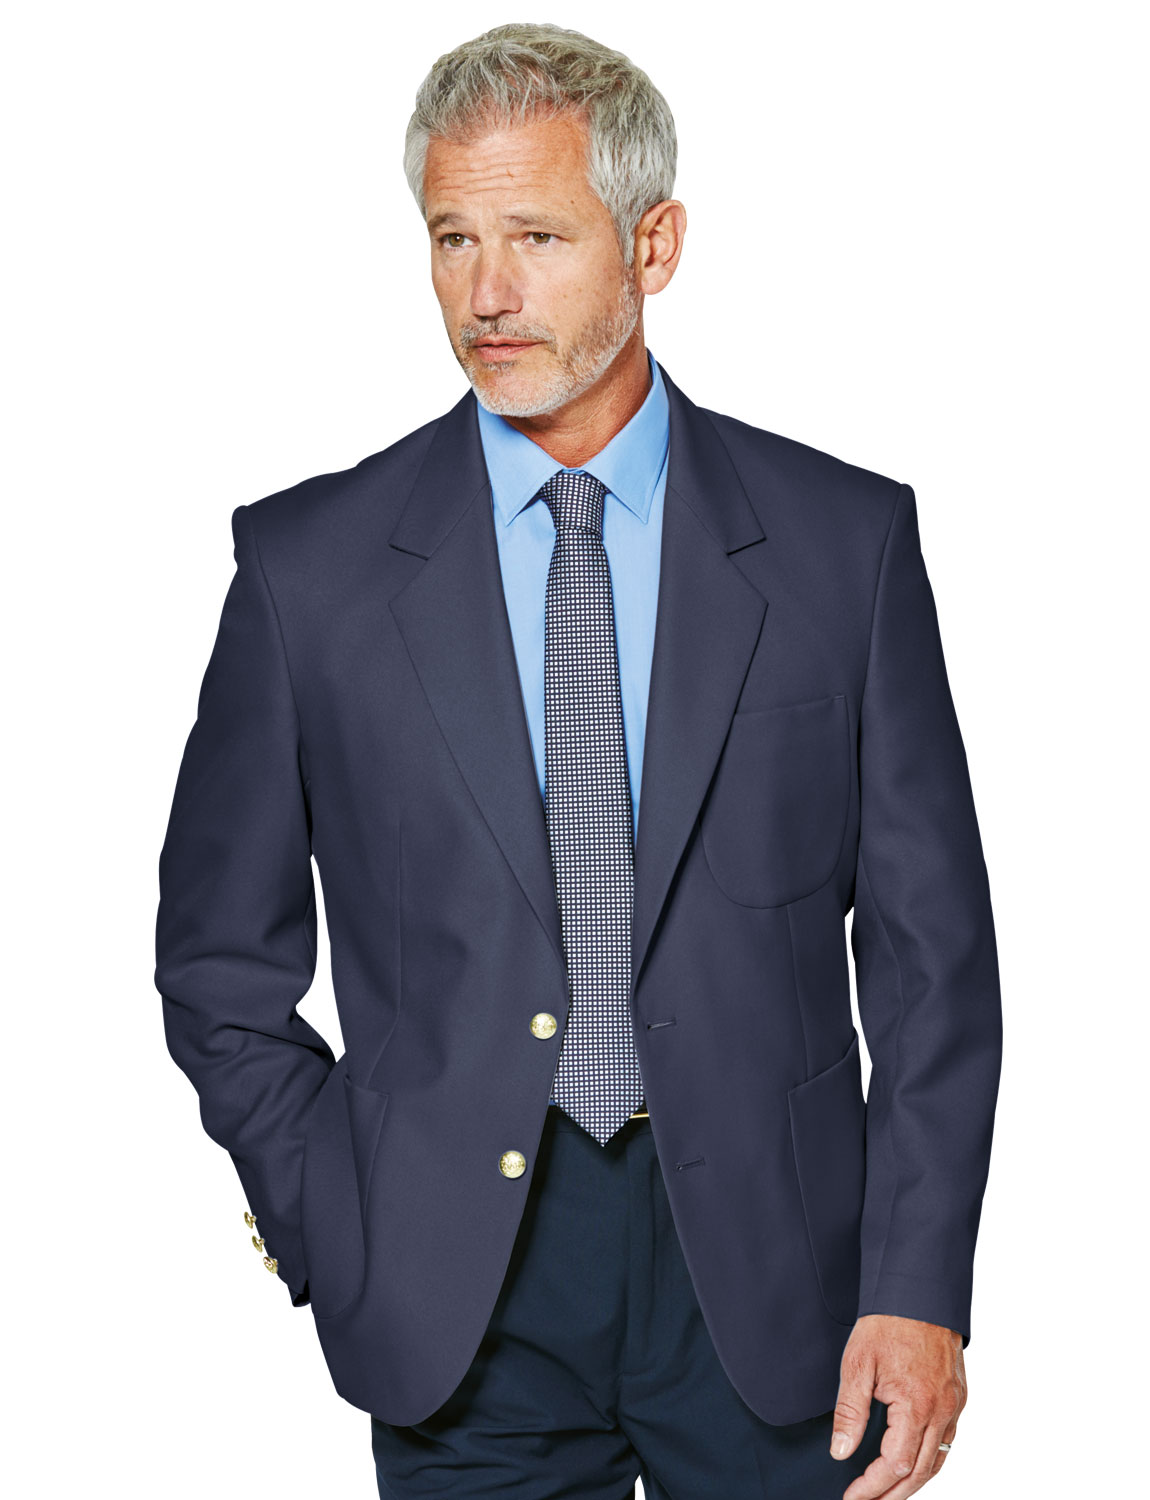 Shop burgundy sport coat blazer, royal blue sport coat mens, tan sport coat navy pants and blazers for men at efwaidi.ga From wedding suit and stylish to casual, we have made finding many sport coat and Mens blazers.